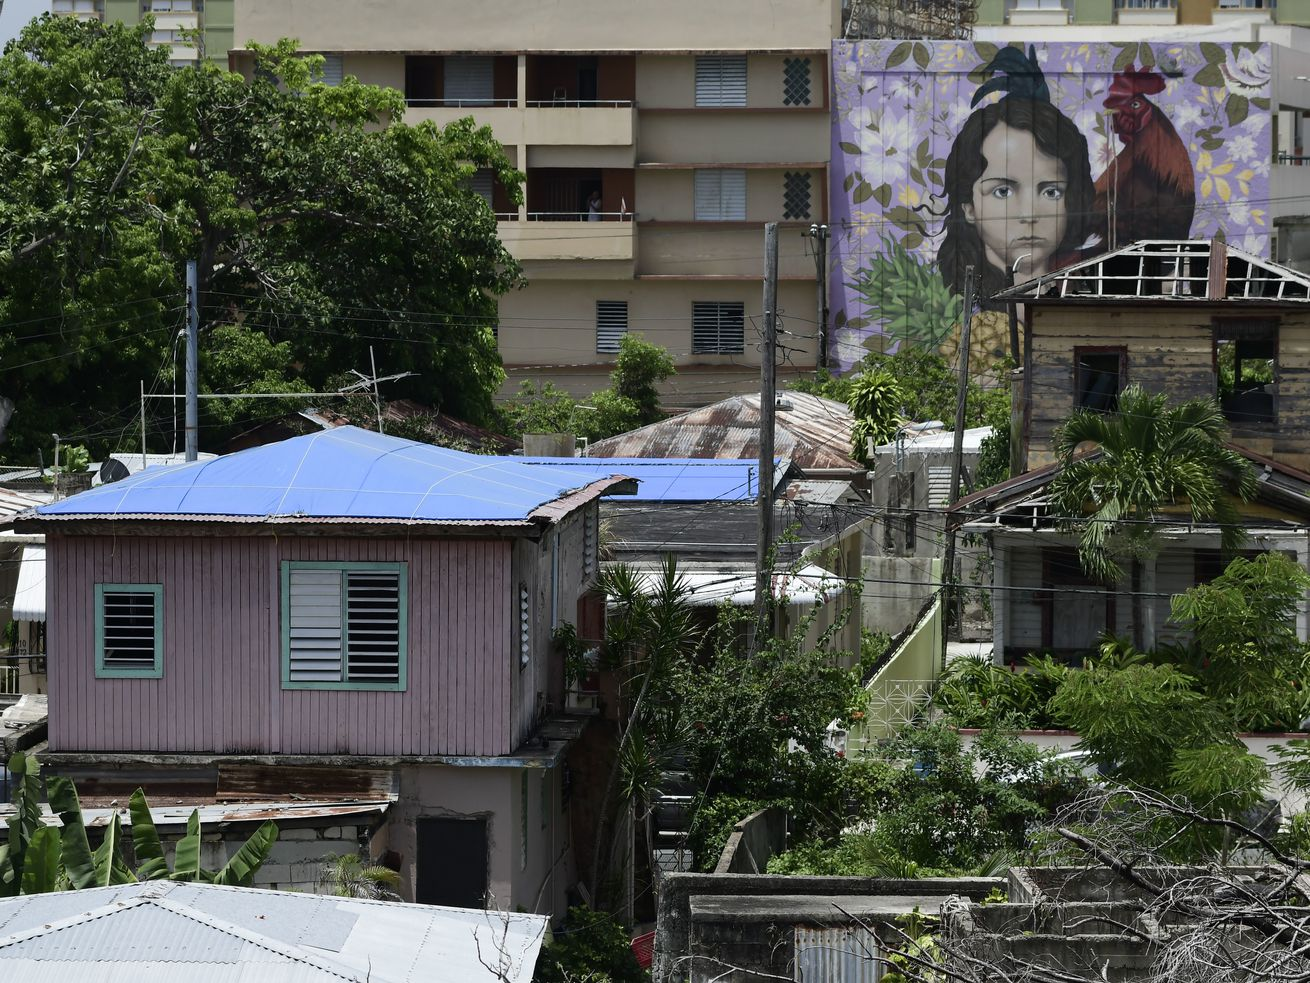 Houses affected by Hurricane Maria, some of them with their missing roofs covered in sturdy blue tarp, in San Juan, Puerto Rico, in June.